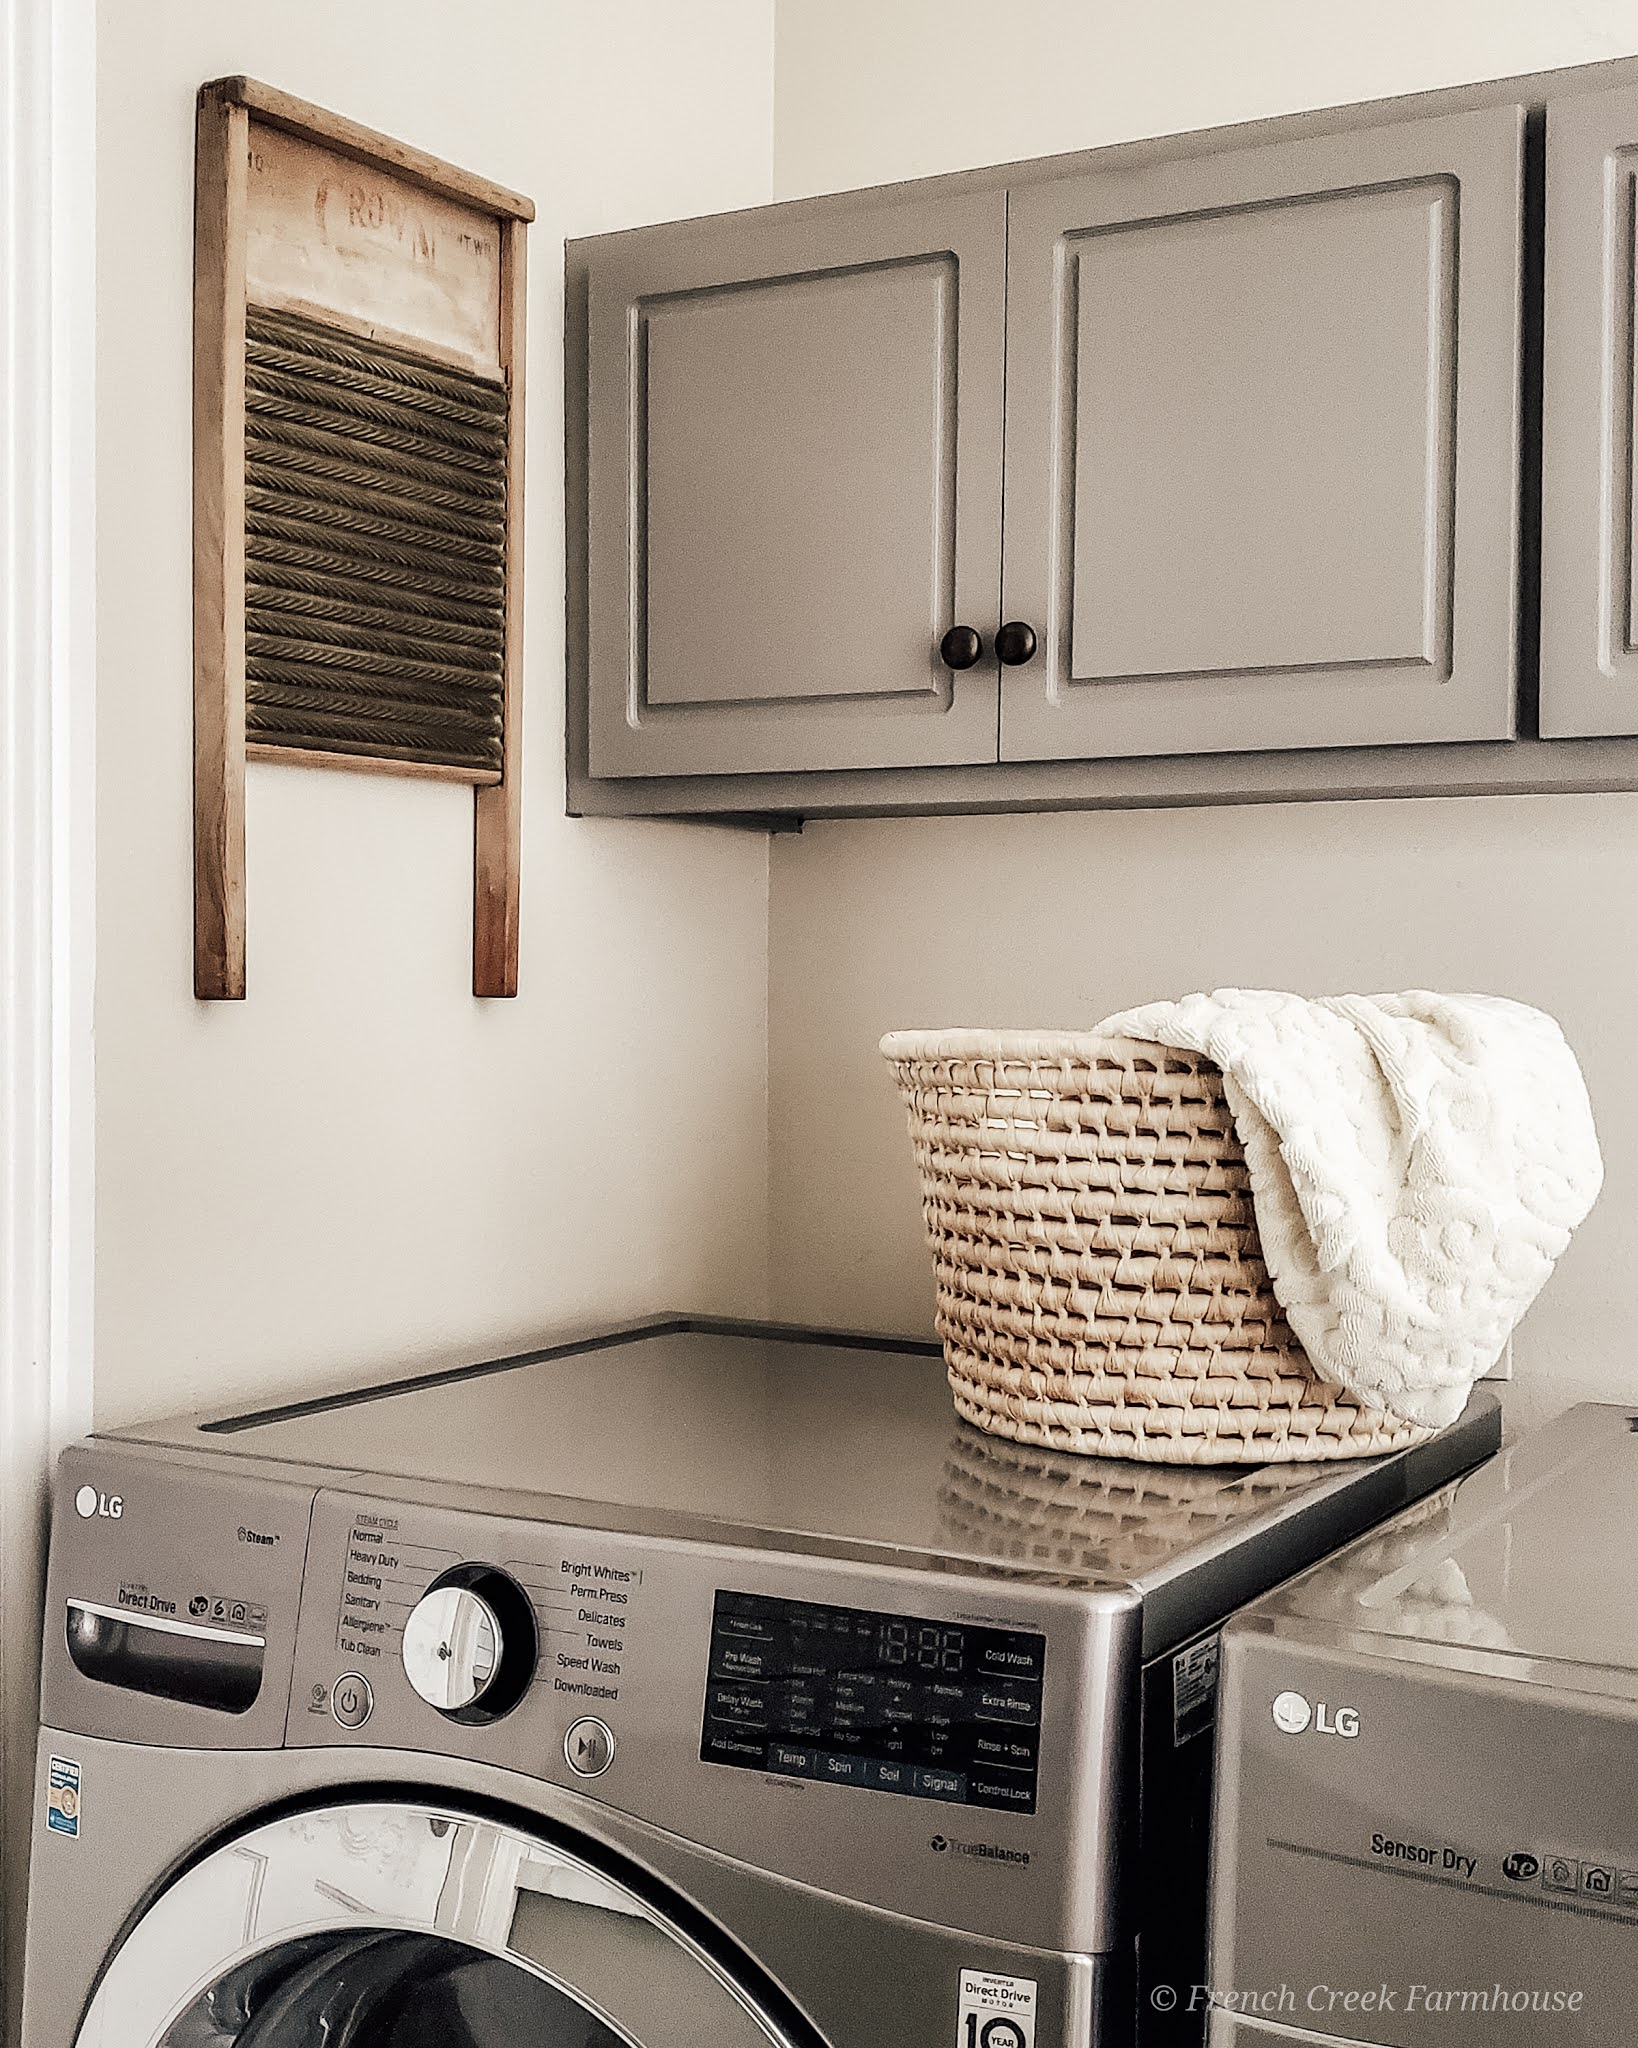 We added a vintage washboard as wall decor to our laundry room